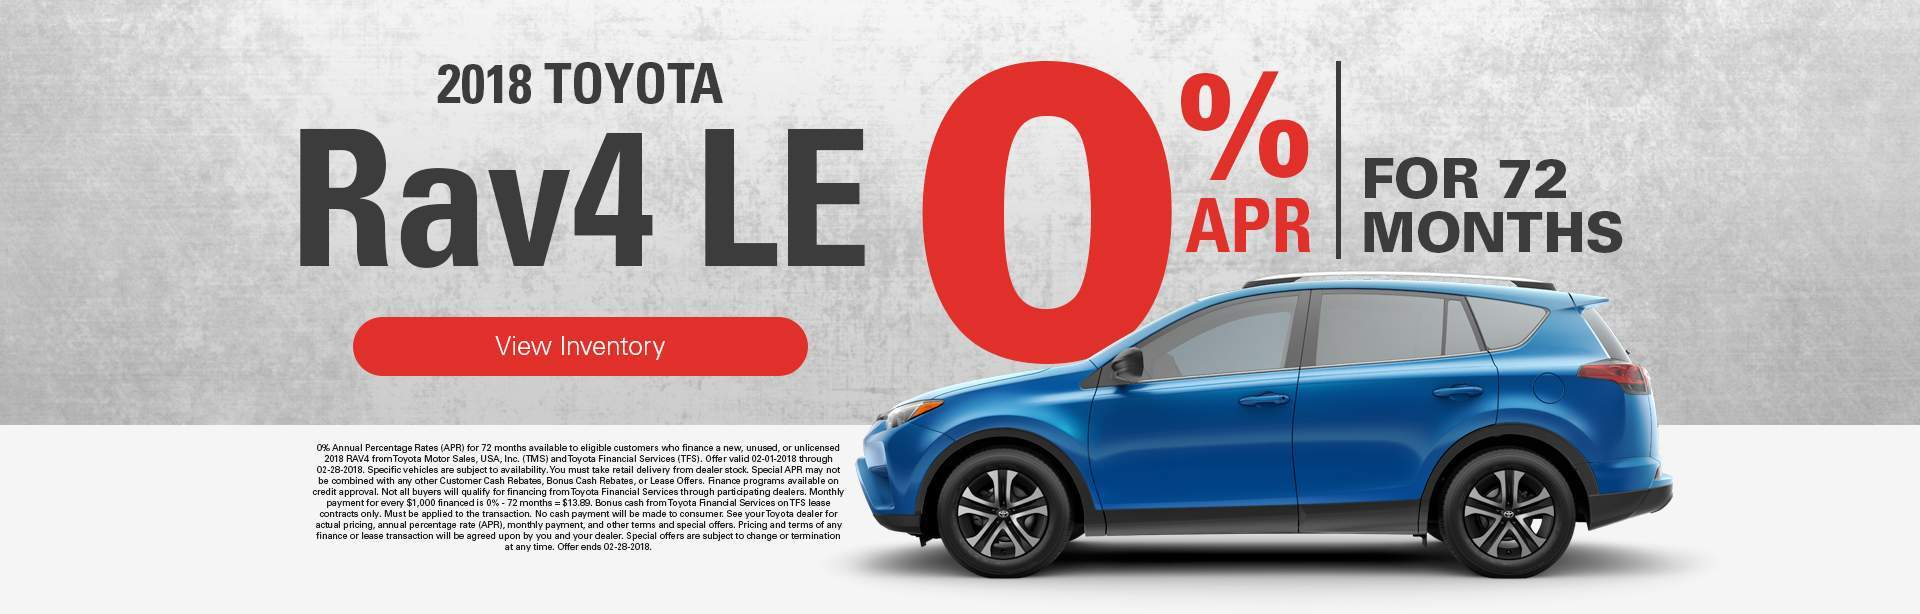 2018 Rav4 LE 0% APR for 72 months